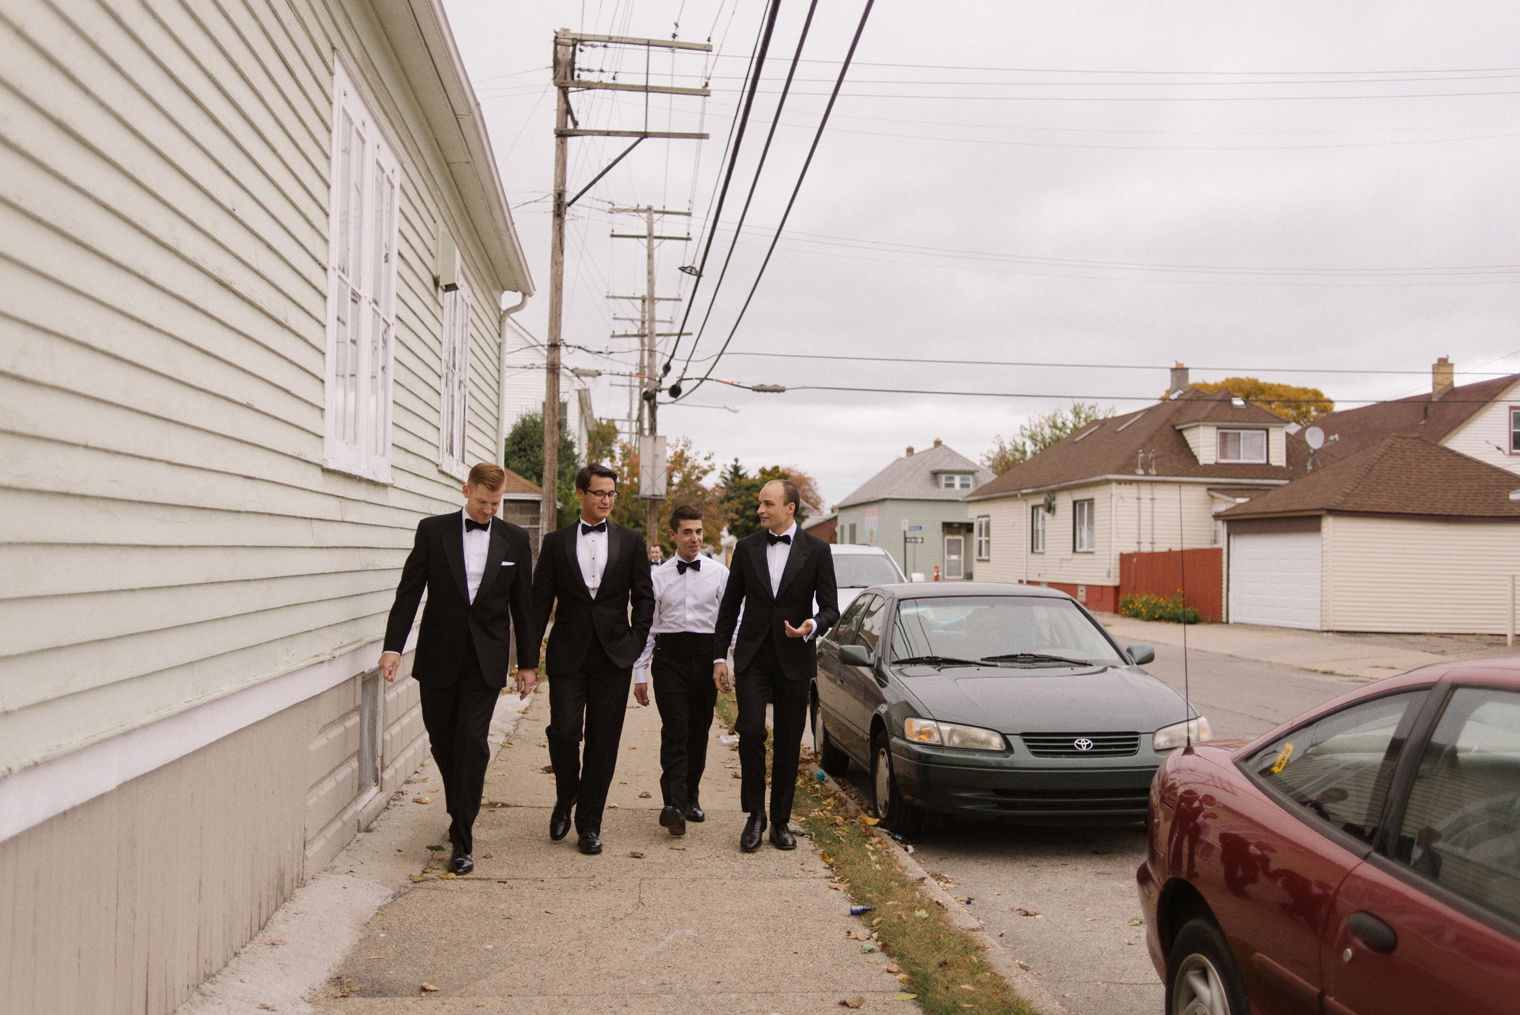 The groom and his groomsmen head to the wedding ceremony on a Detroit wedding day by photographer Heather Jowett.